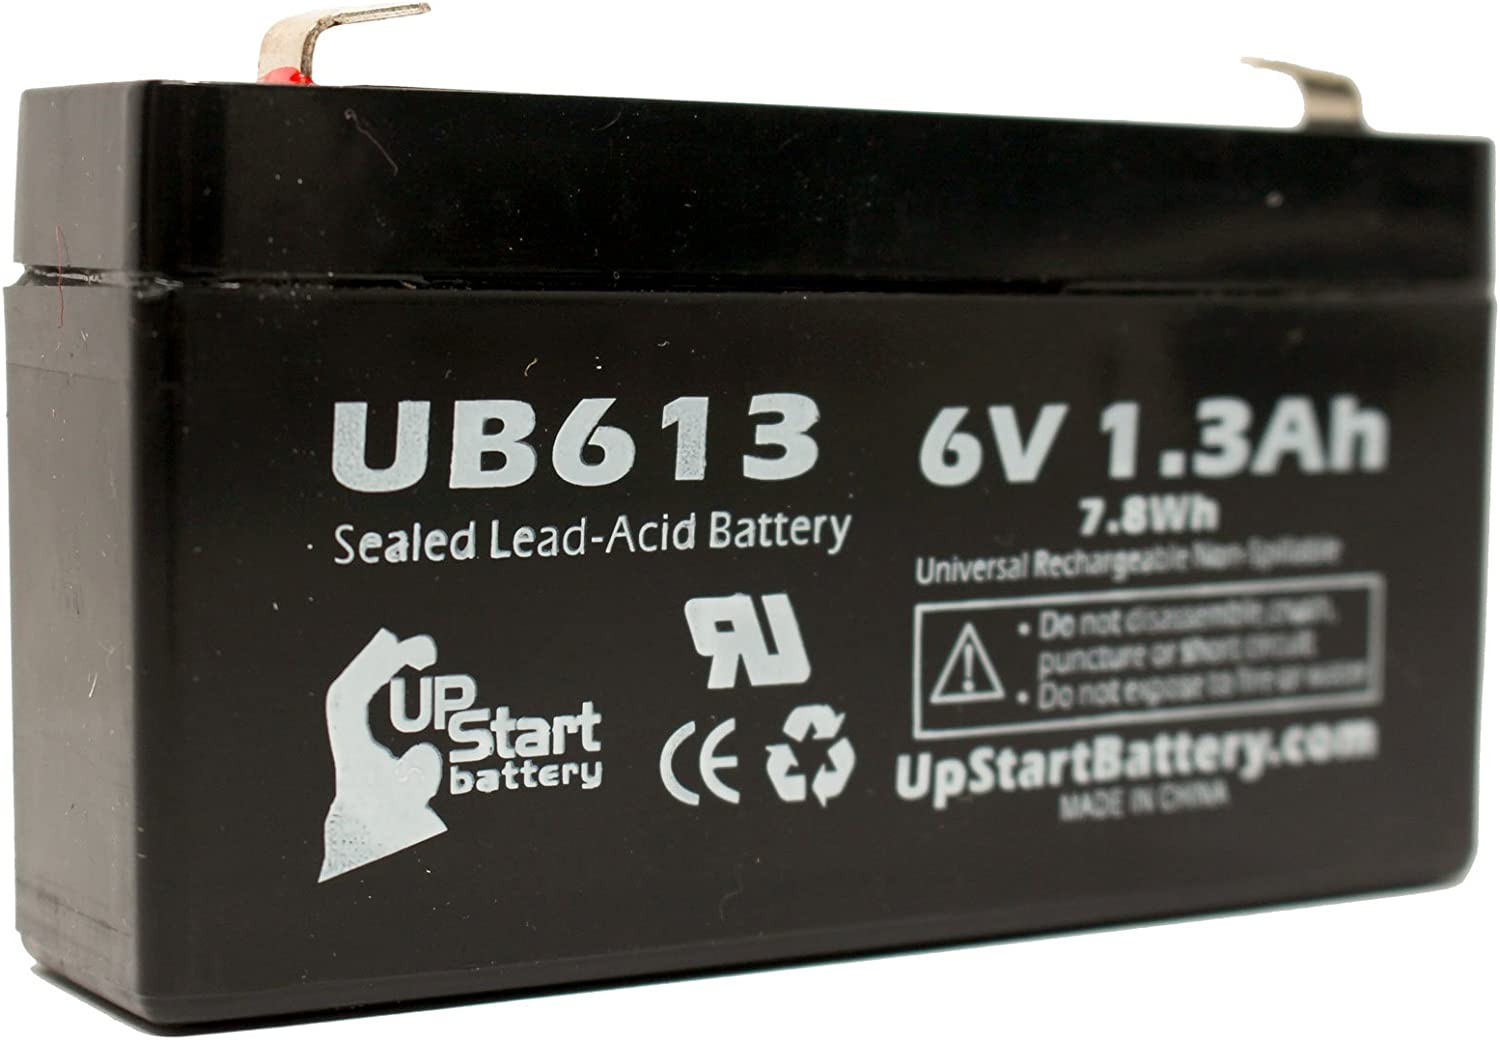 6V, 1.3Ah, 1300mAh, F1 Terminal, AGM, SLA UB613 Universal Sealed Lead Acid Battery Exitronix Ex6v1.2a Compatible with NORTH SUPPLY 782322 Lintronics Lcr6v1 Casil//Chee Yuen Industrial Ca613 Lichpower Djw6-12 - Includes TWO F1 to F2 Terminal Adapters